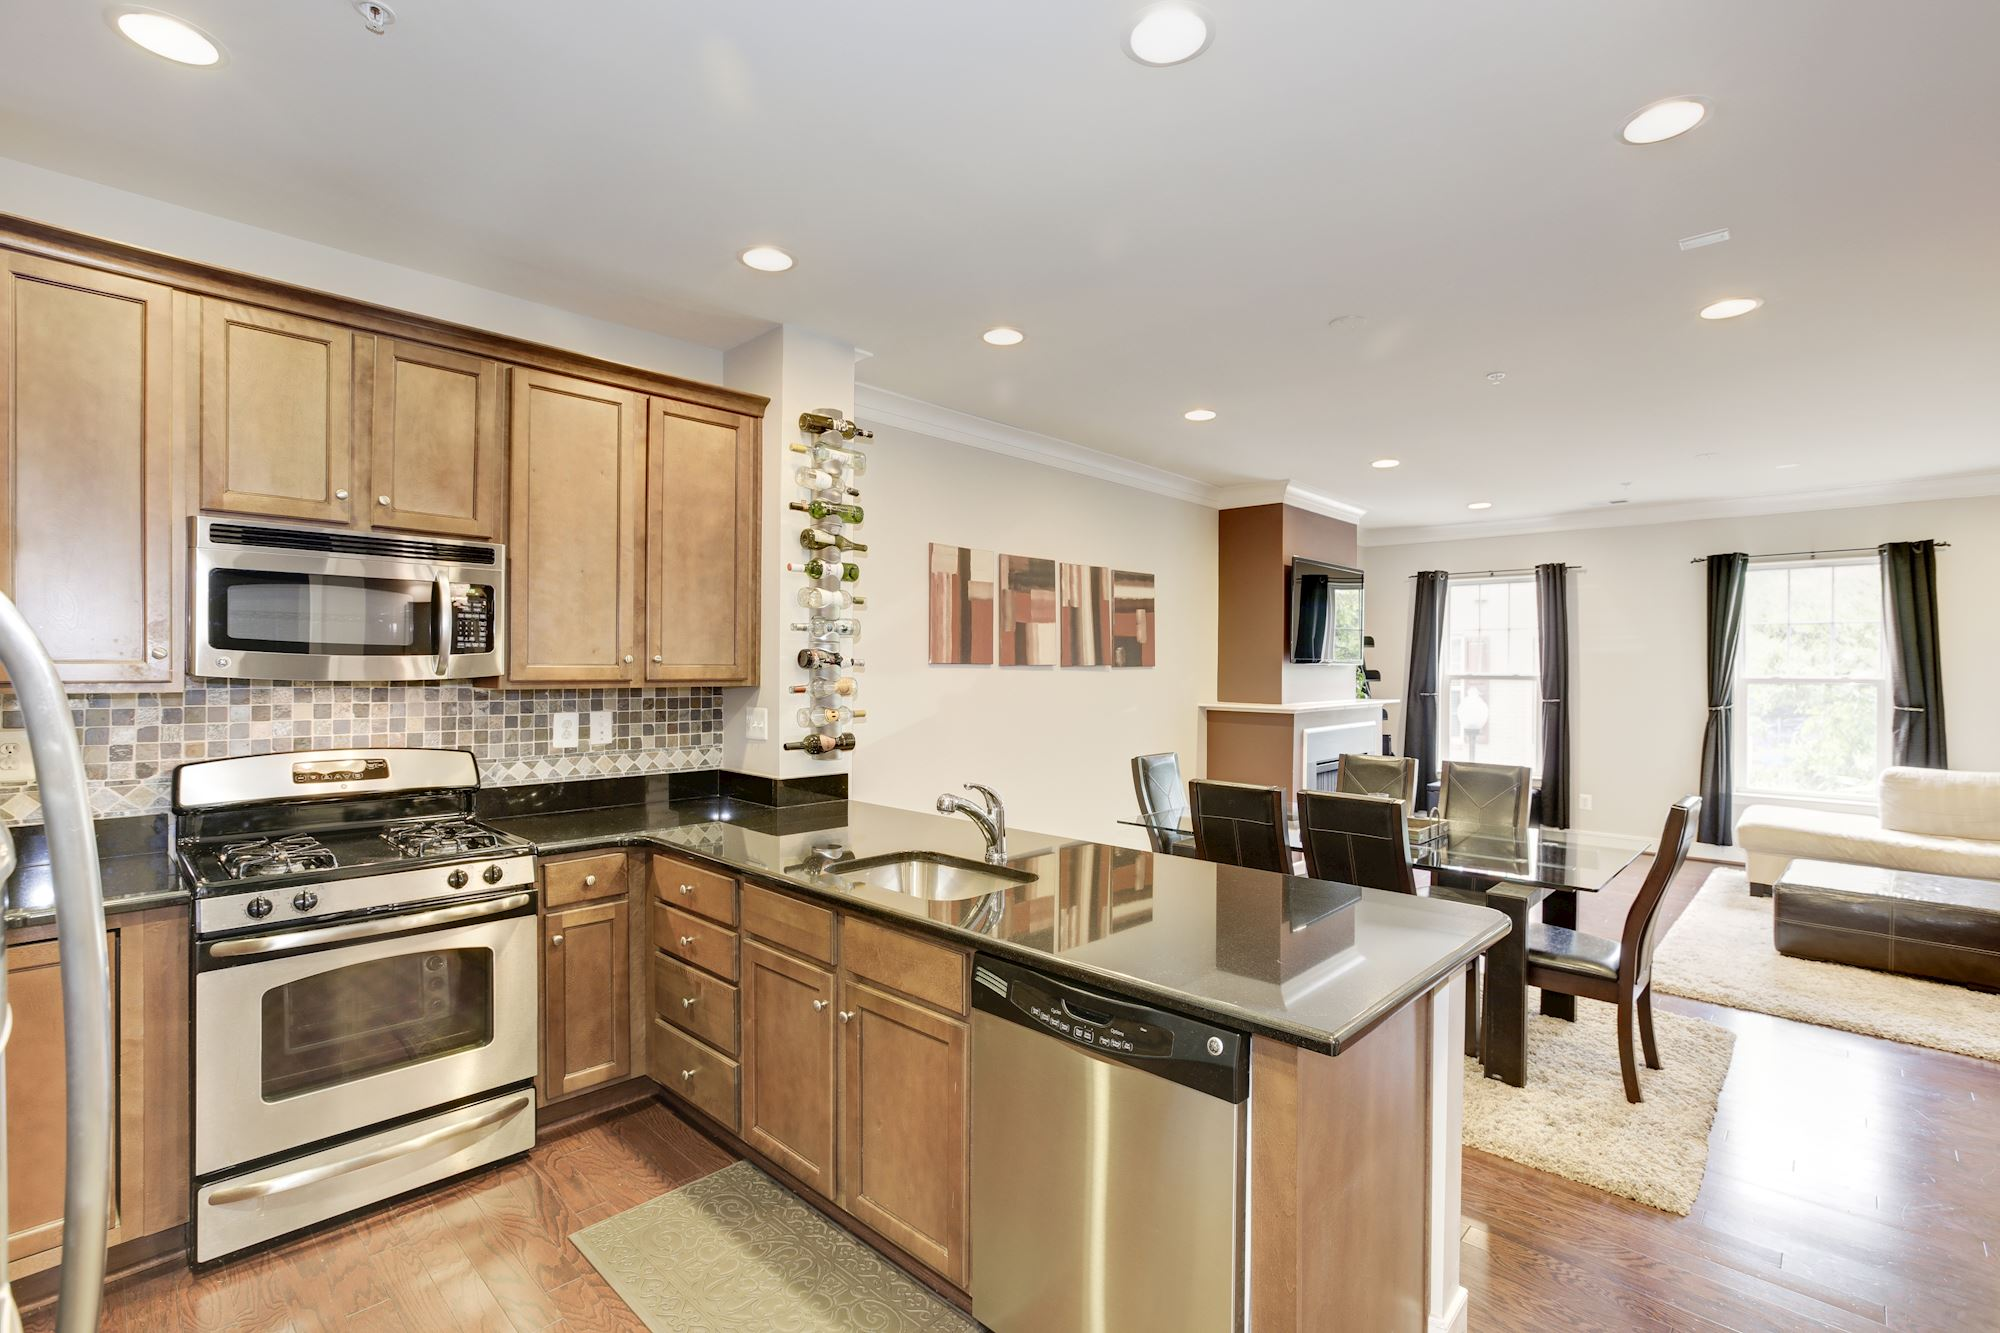 New Listing: Elegant 3 Bed Townhome in Alexandria